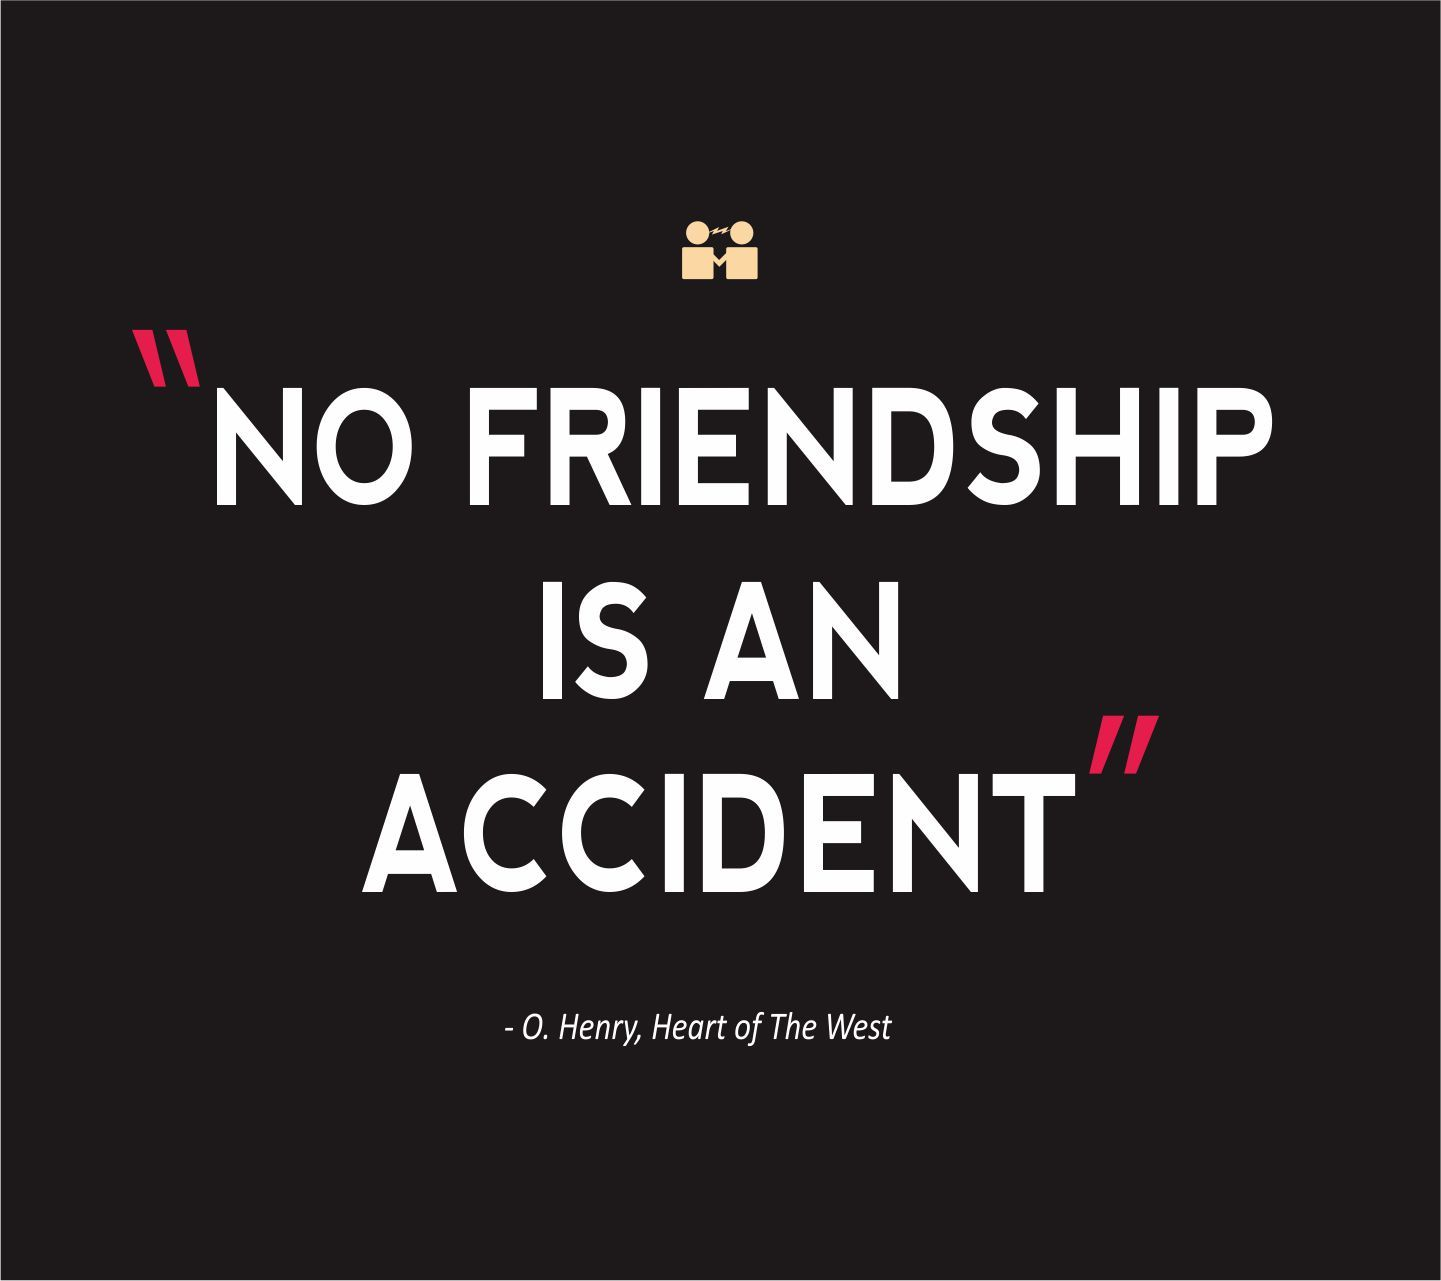 Quotes About Friends: Friendship Quotes No Friendship Is An Accident O Henry